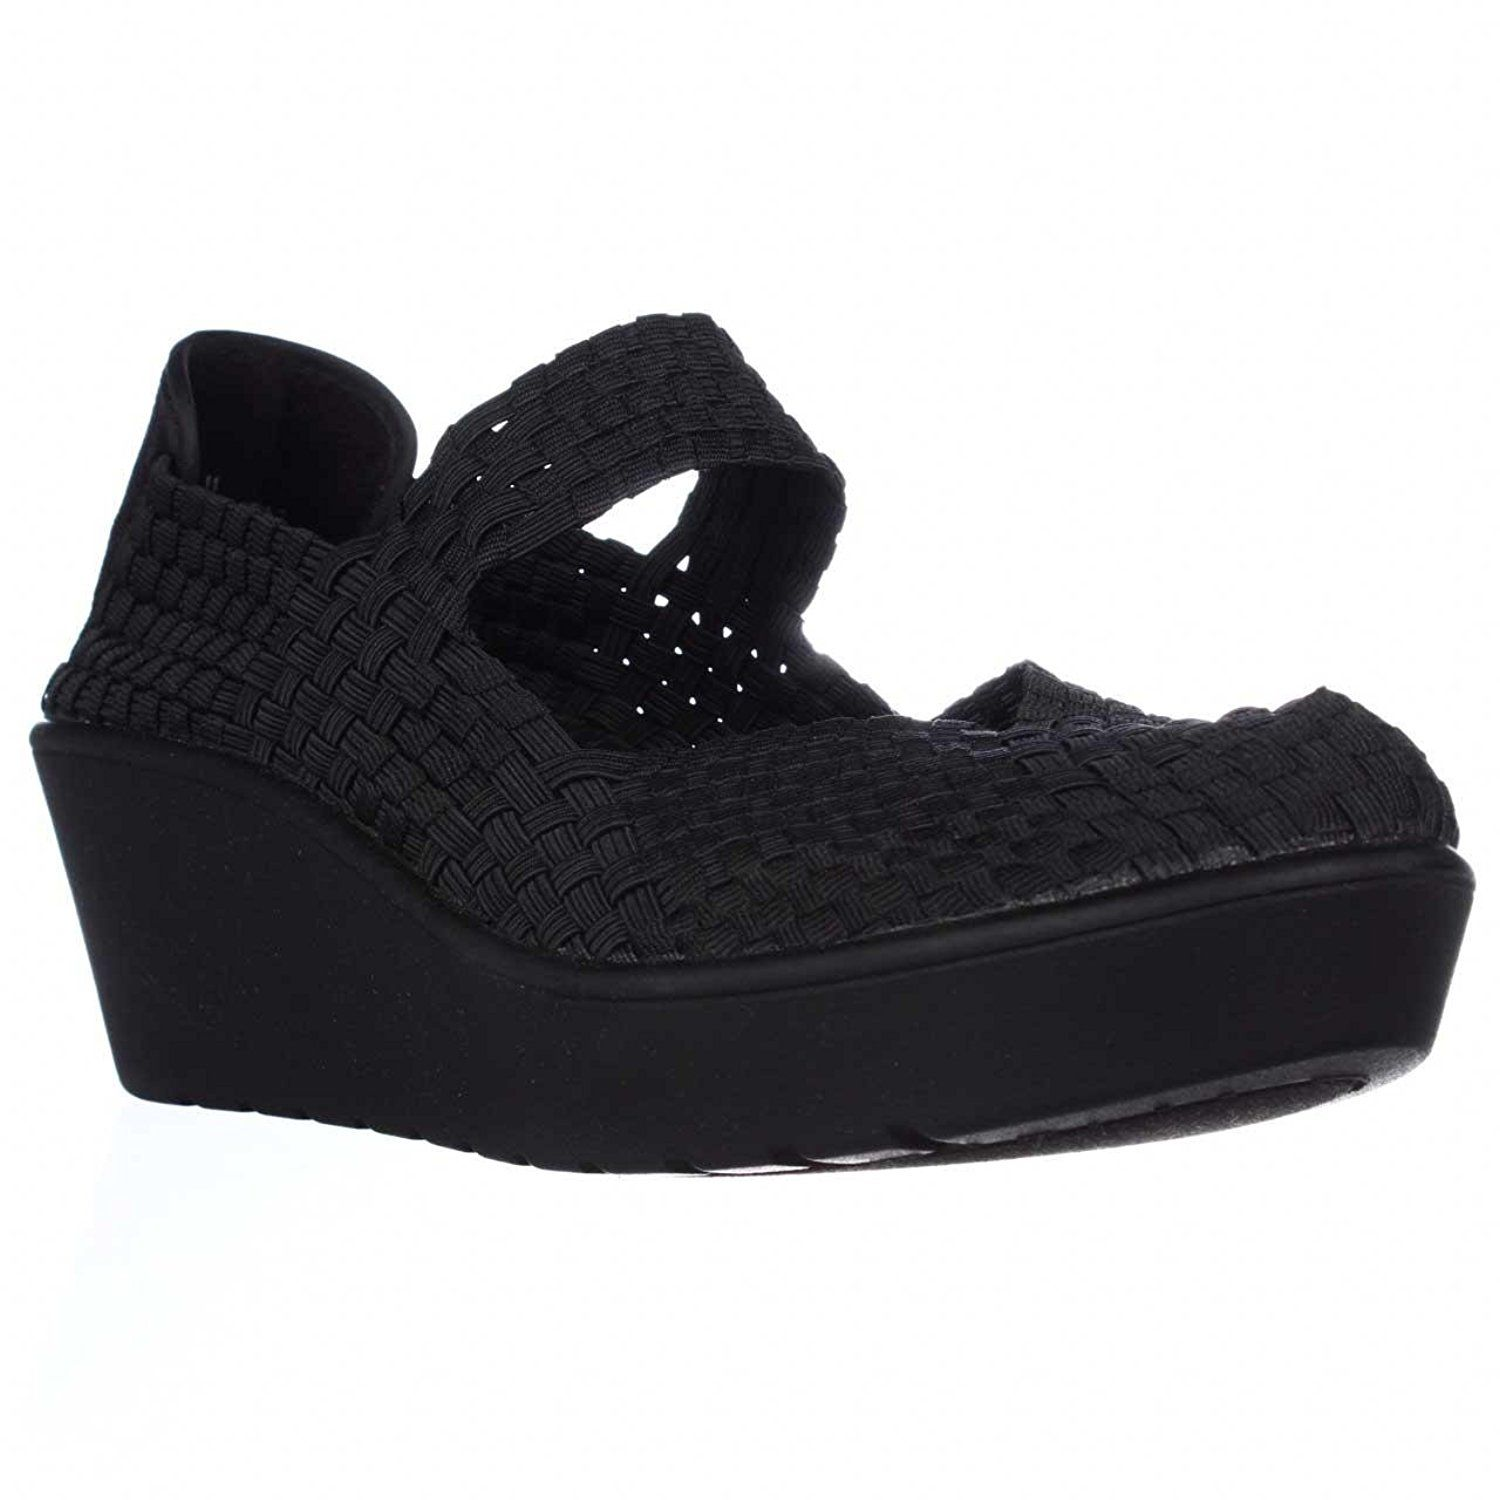 7654c22dc7cfc Steven By Steve Madden Womens Brice Mary Jane Shoes *** To view ...